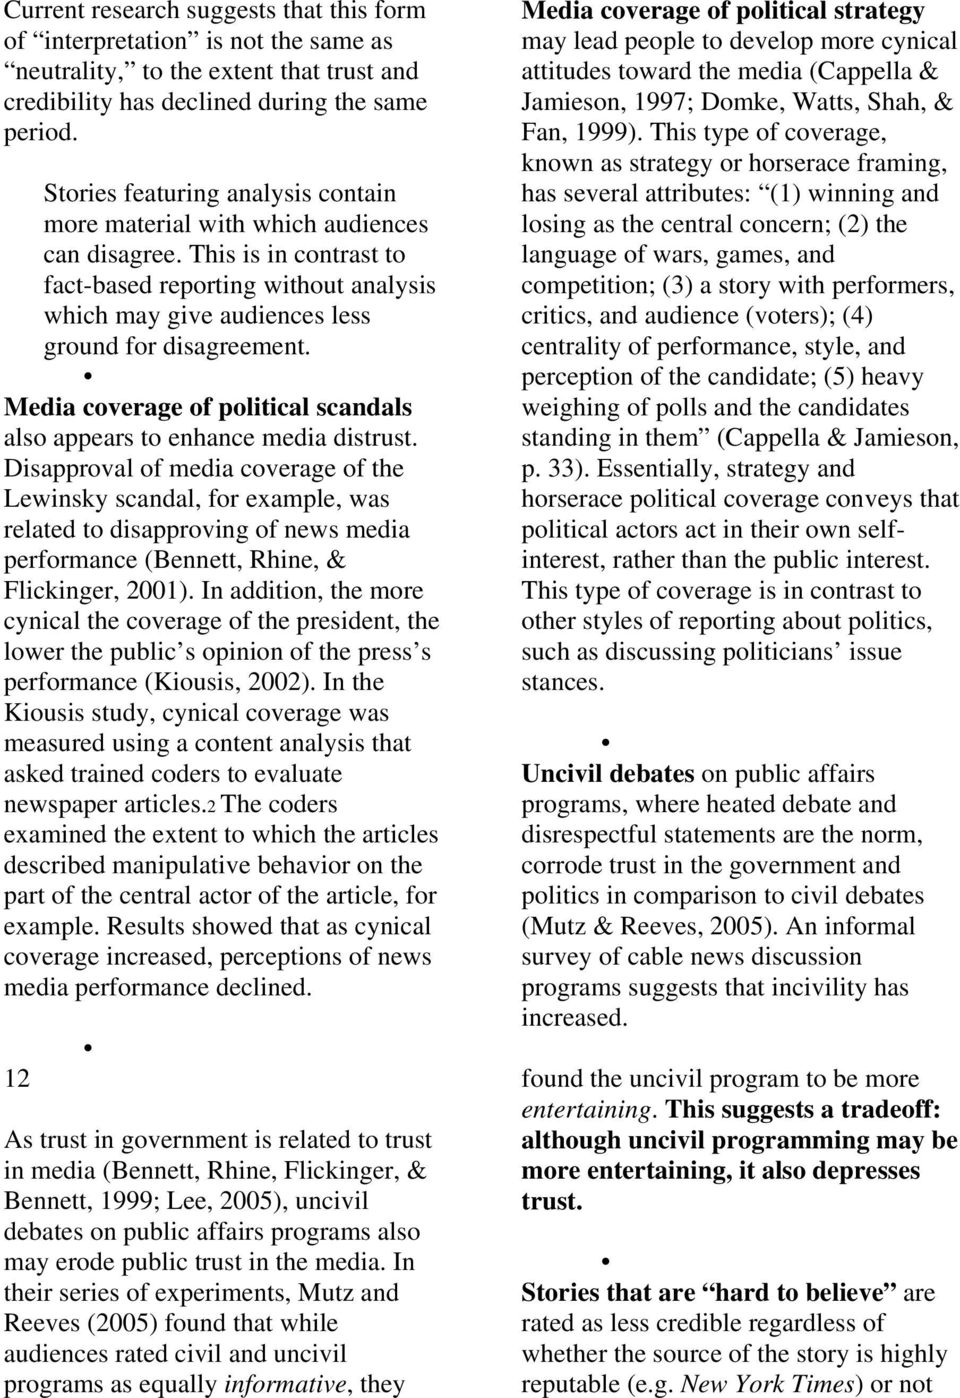 Media coverage of political scandals also appears to enhance media distrust.